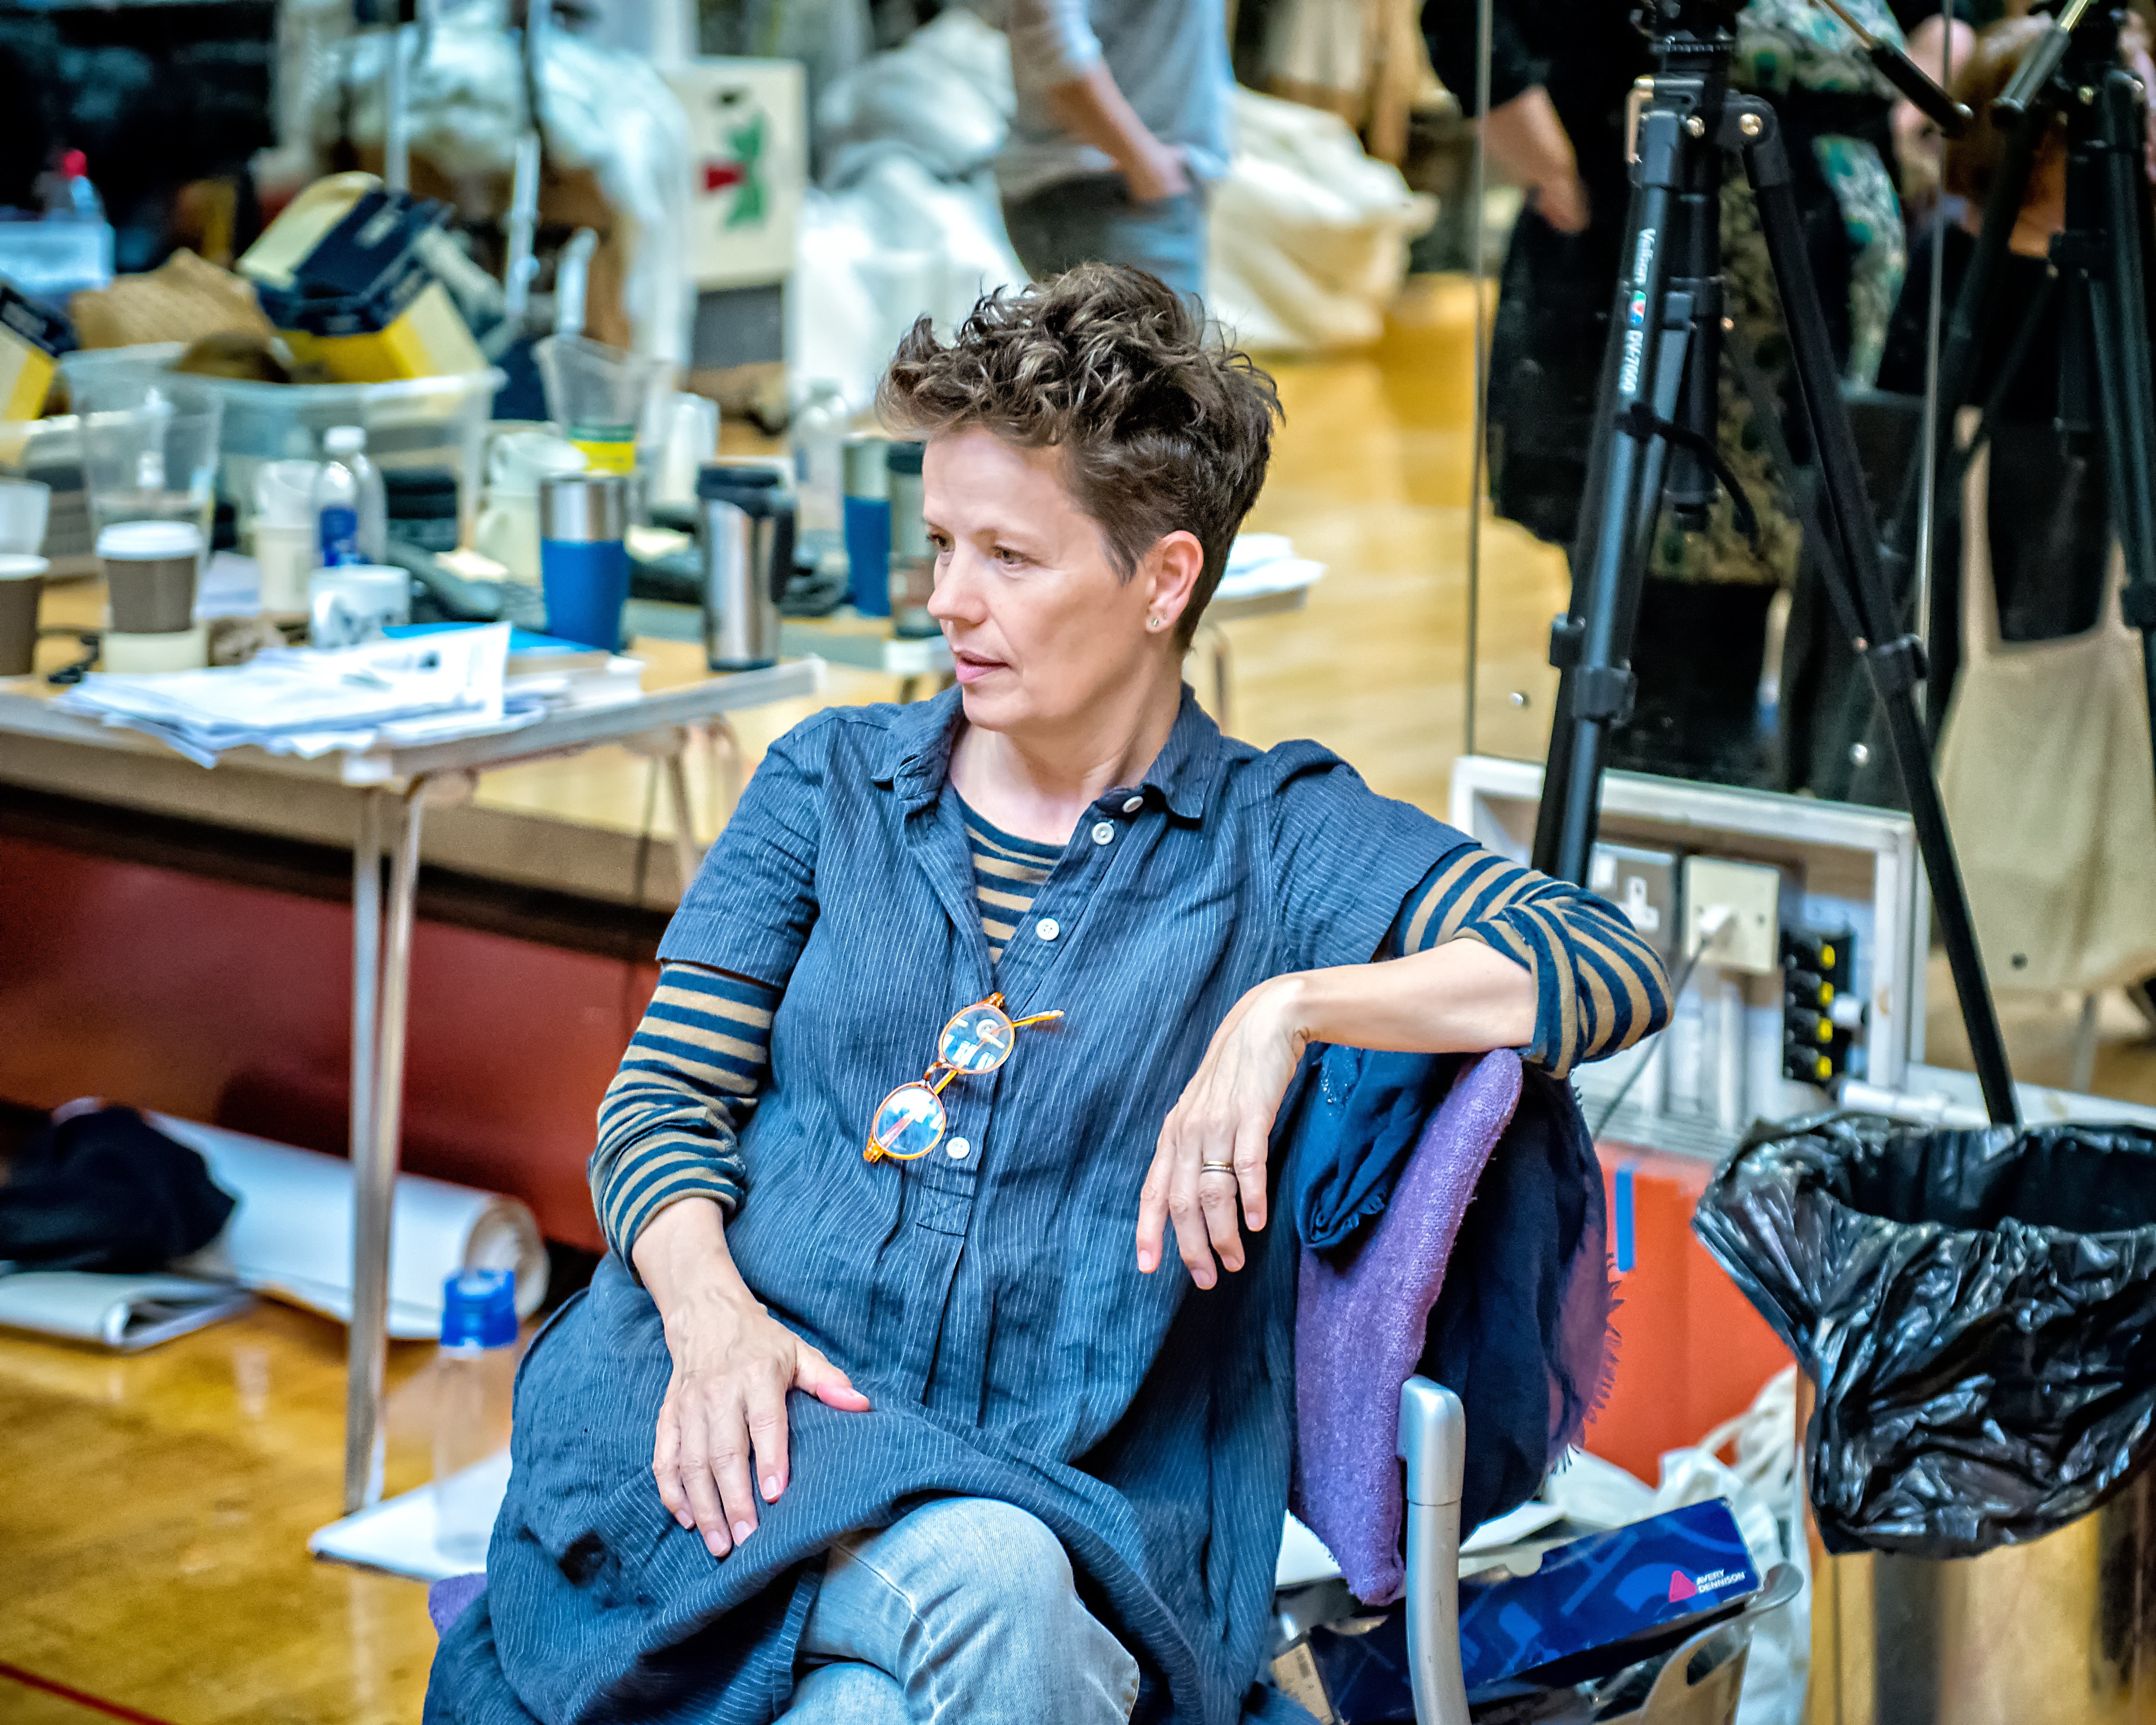 Director Sally Cookson on The Lion, The Witch & The Wardrobe